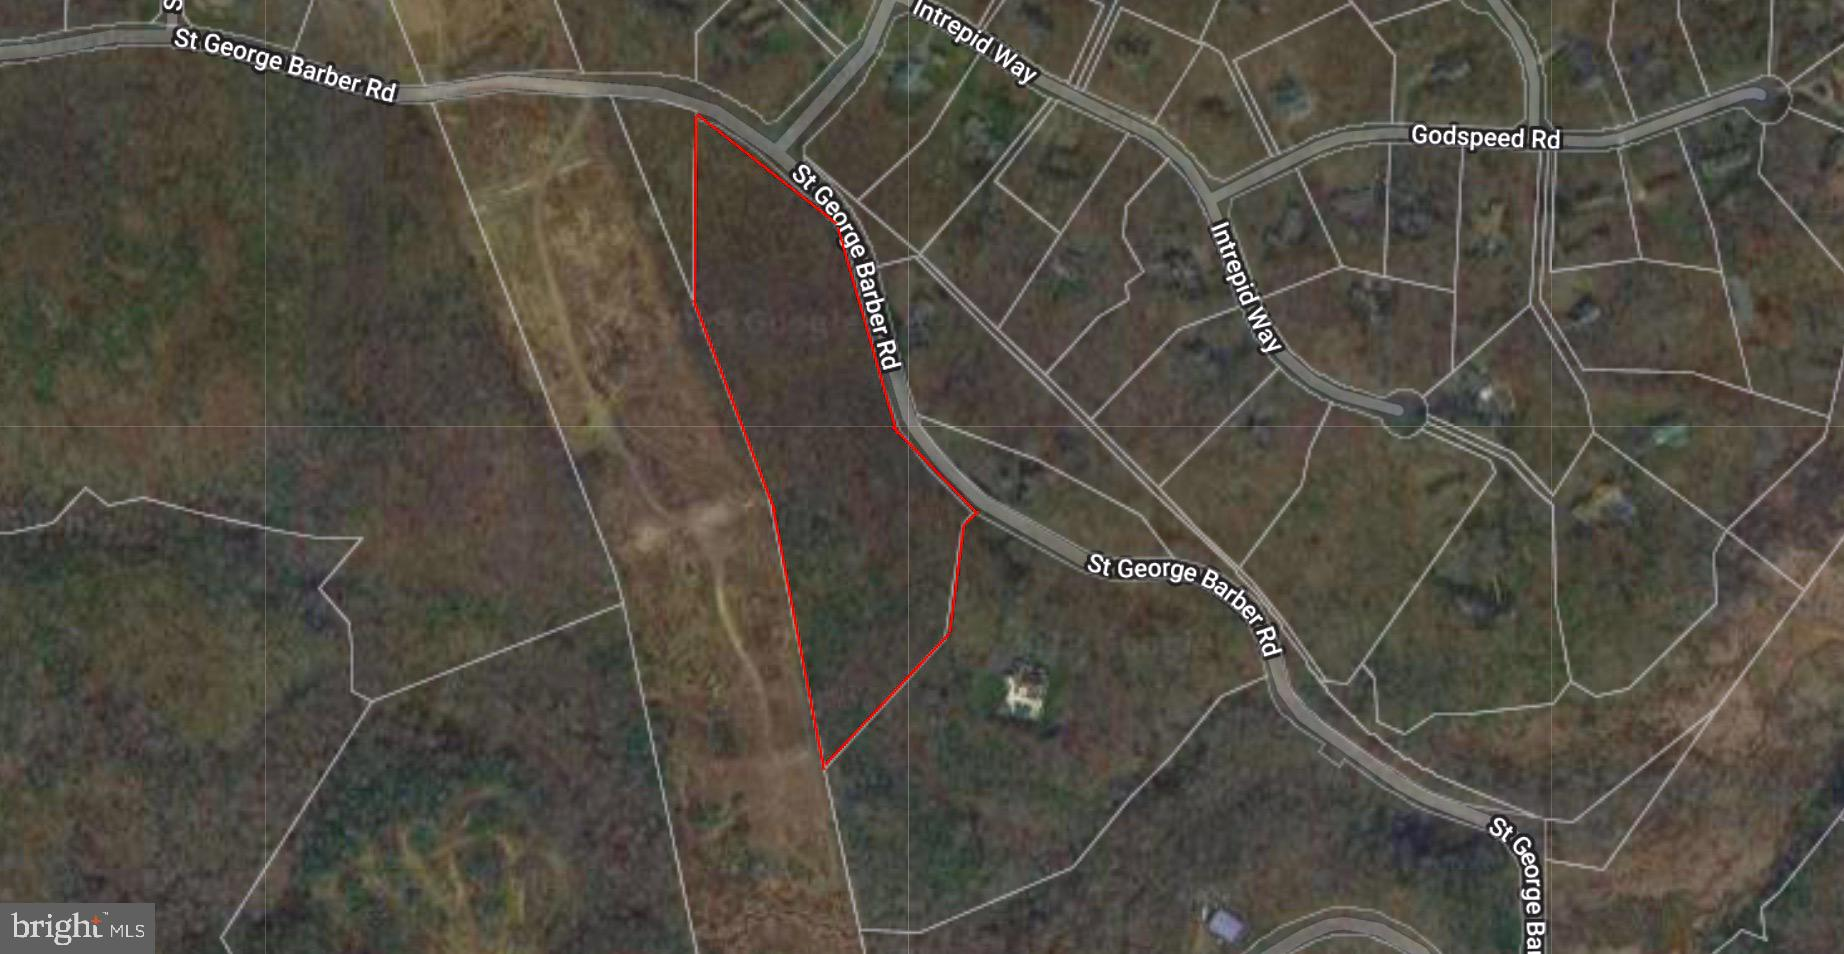 Sought after Davidsonville!  11+ wooded acres offers privacy.    This beautiful lot is located adjacent to a 14 acre gated home and follows St George Barber Rd up to approximately the entrance to Harbor Hills.  A Perc test for a septic system has already been completed and will accommodate any size home of your choice.   Bring your own builder or we can help you choose one and can guide you through the construction financing options as well!  Convenient commuting location for DC, Baltimore or Annapolis.     Shopping and restaurants nearby in all directions.